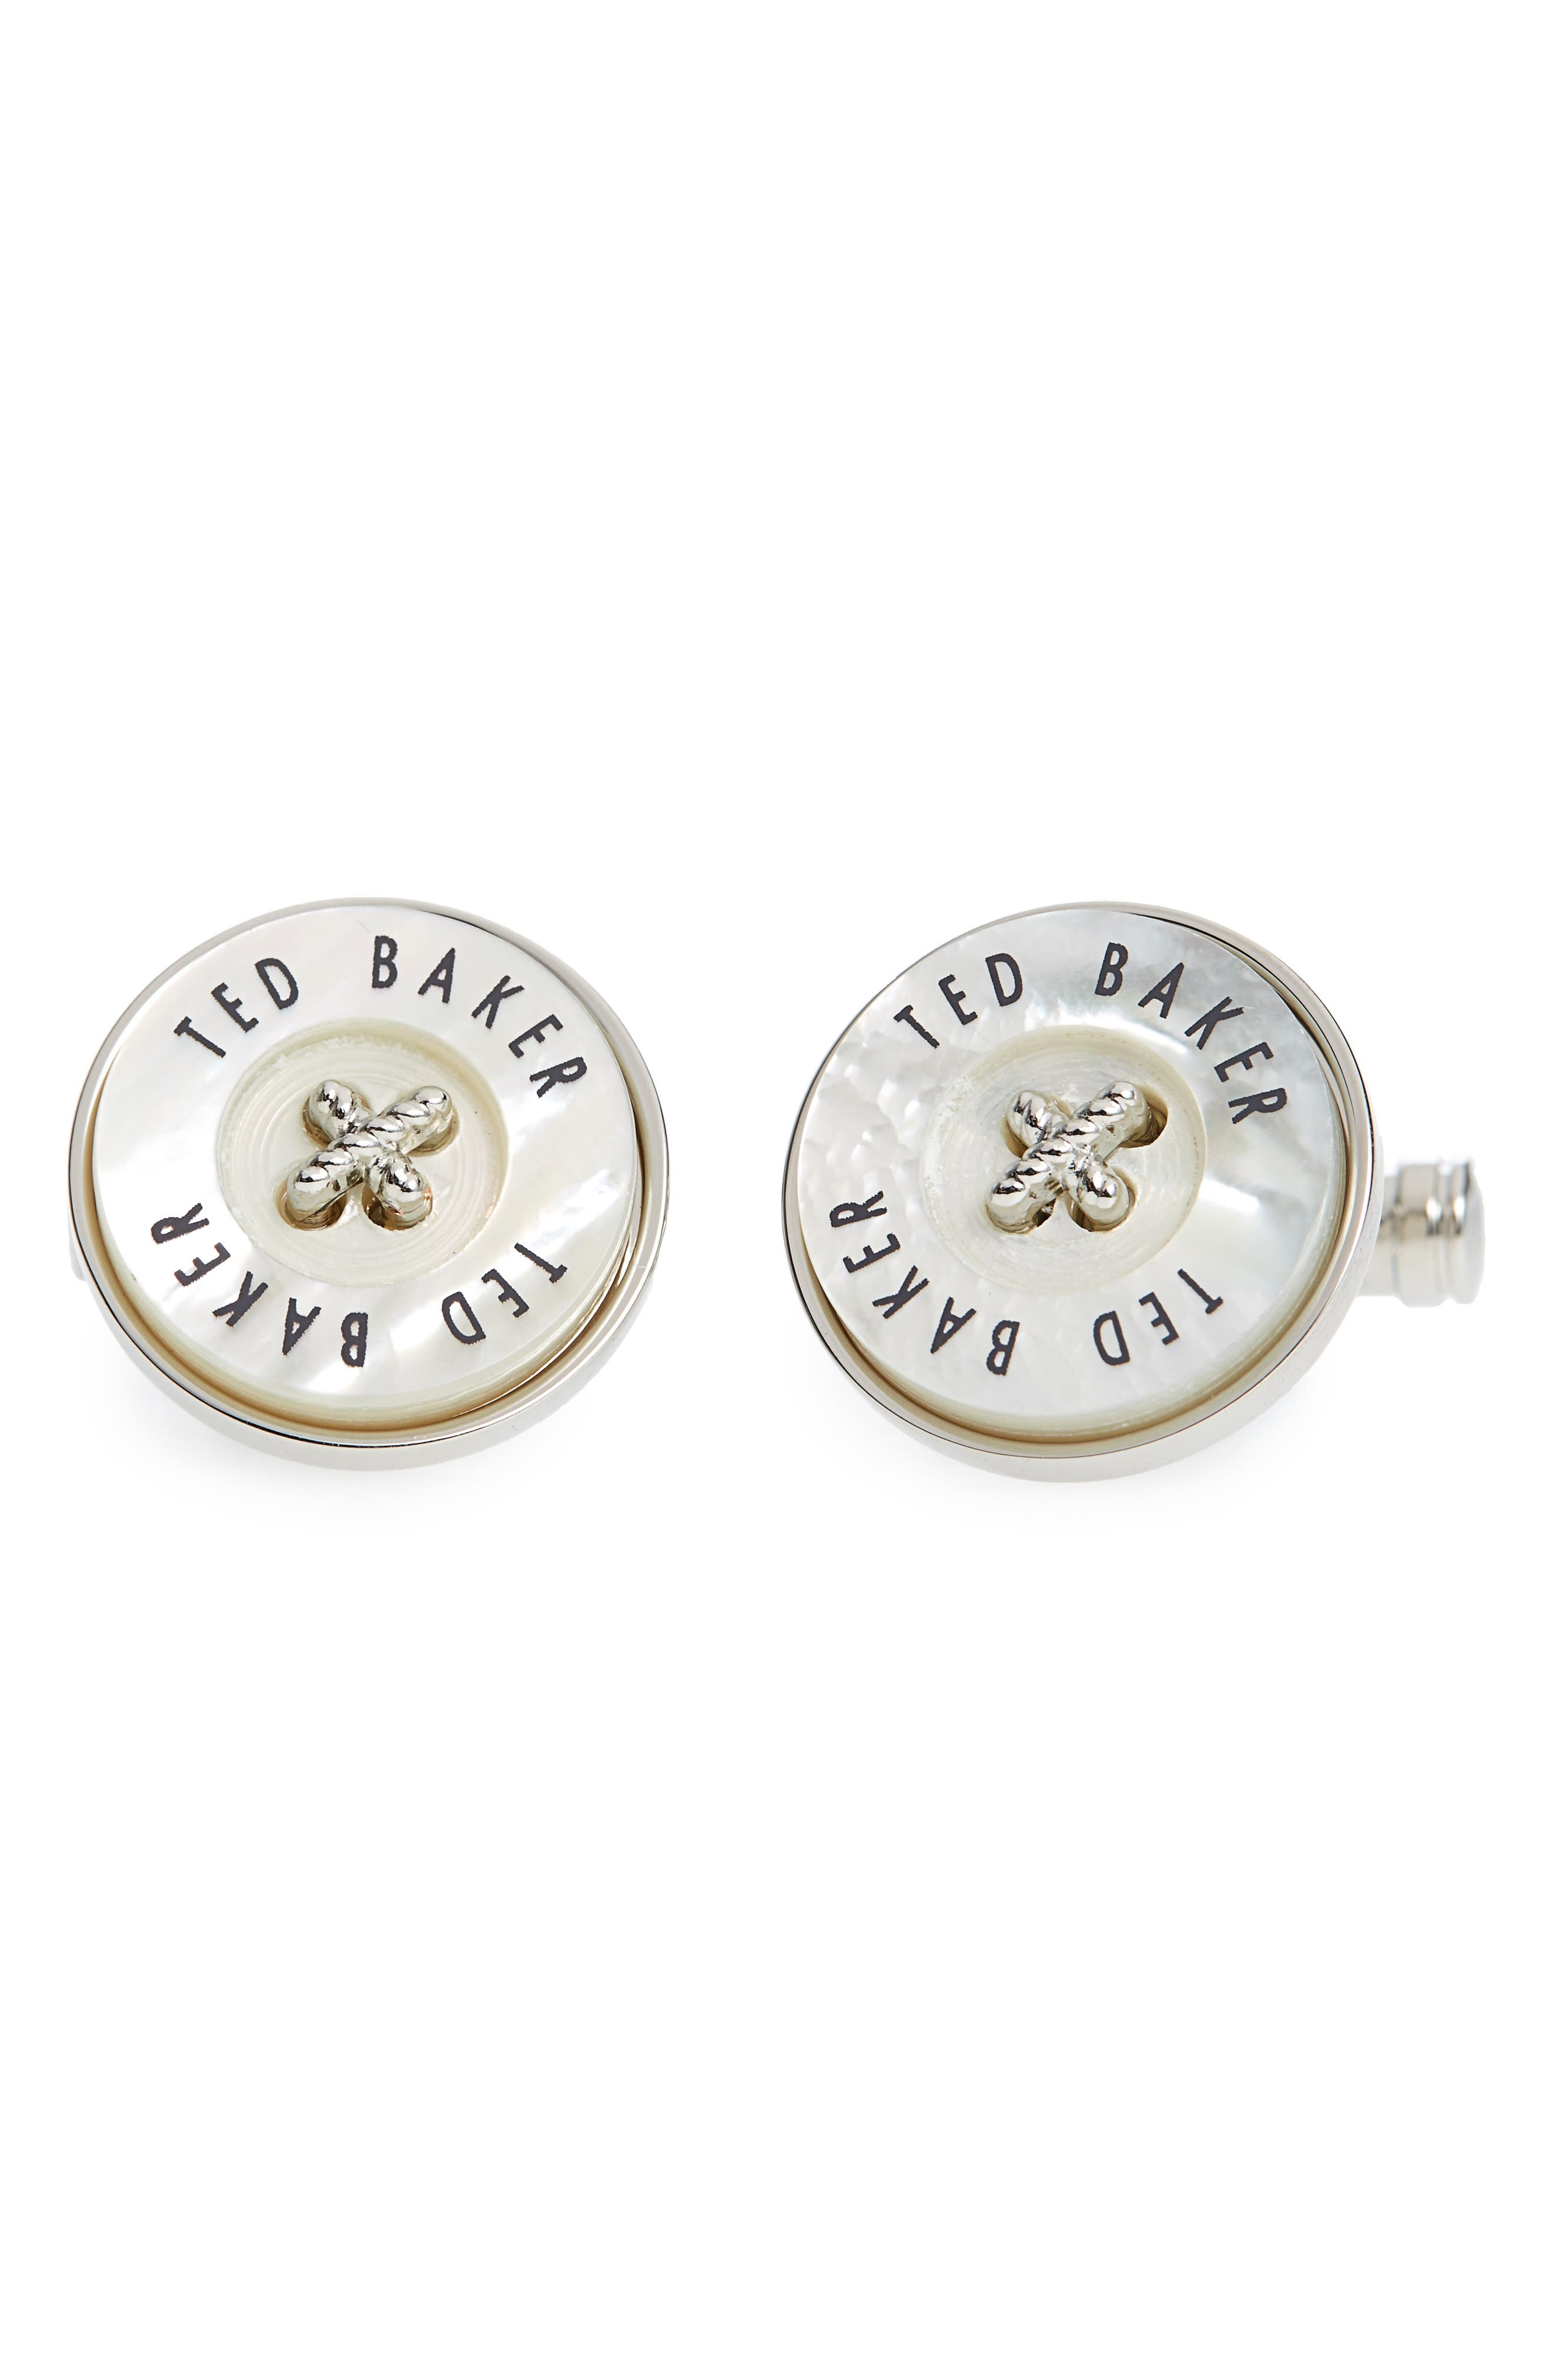 Alternate Image 1 Selected - Ted Baker London Sizzle Cuff Links